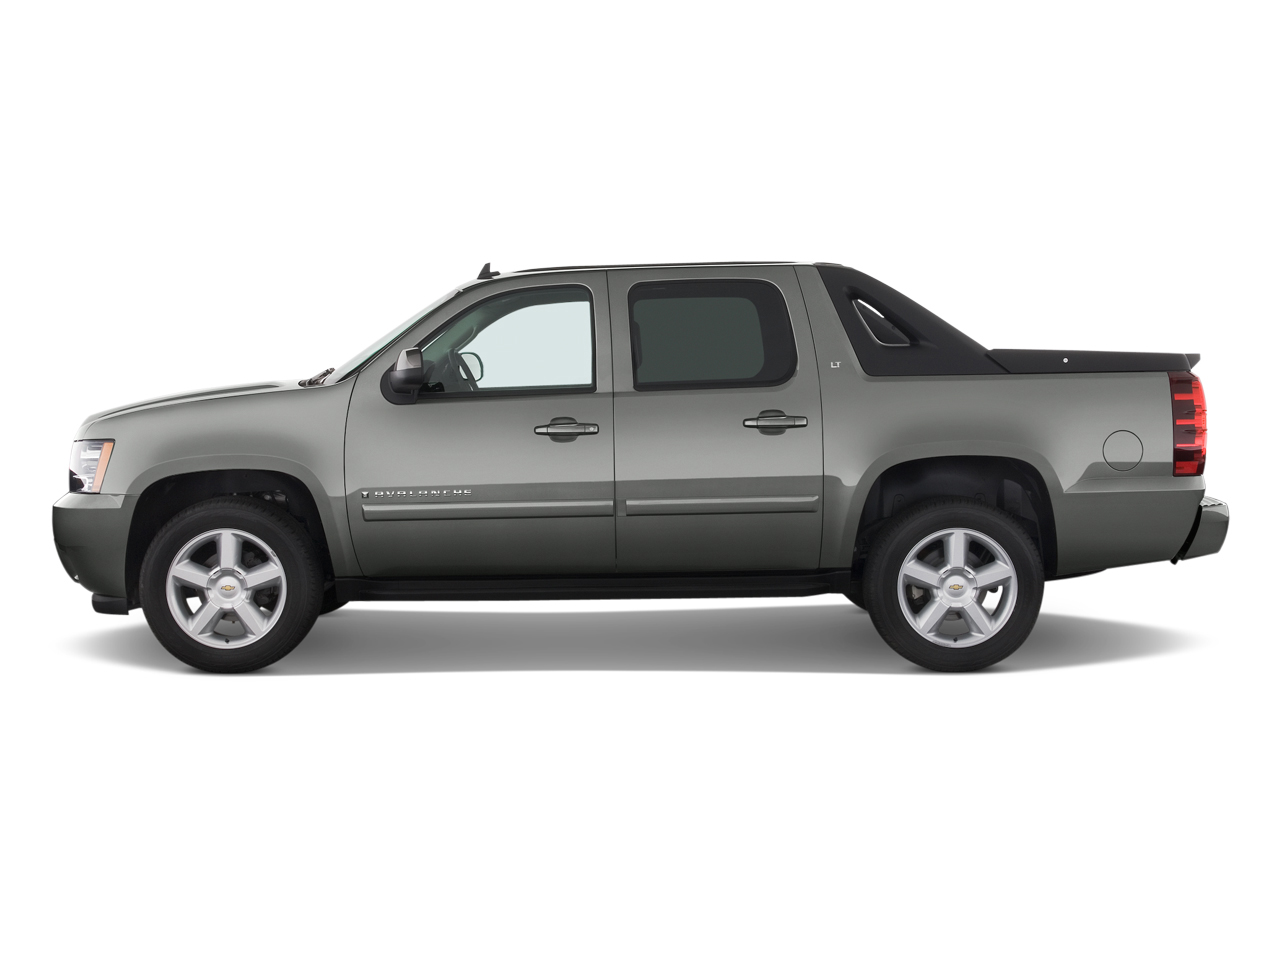 2011 Chevrolet Avalanche Chevy Review Ratings Specs